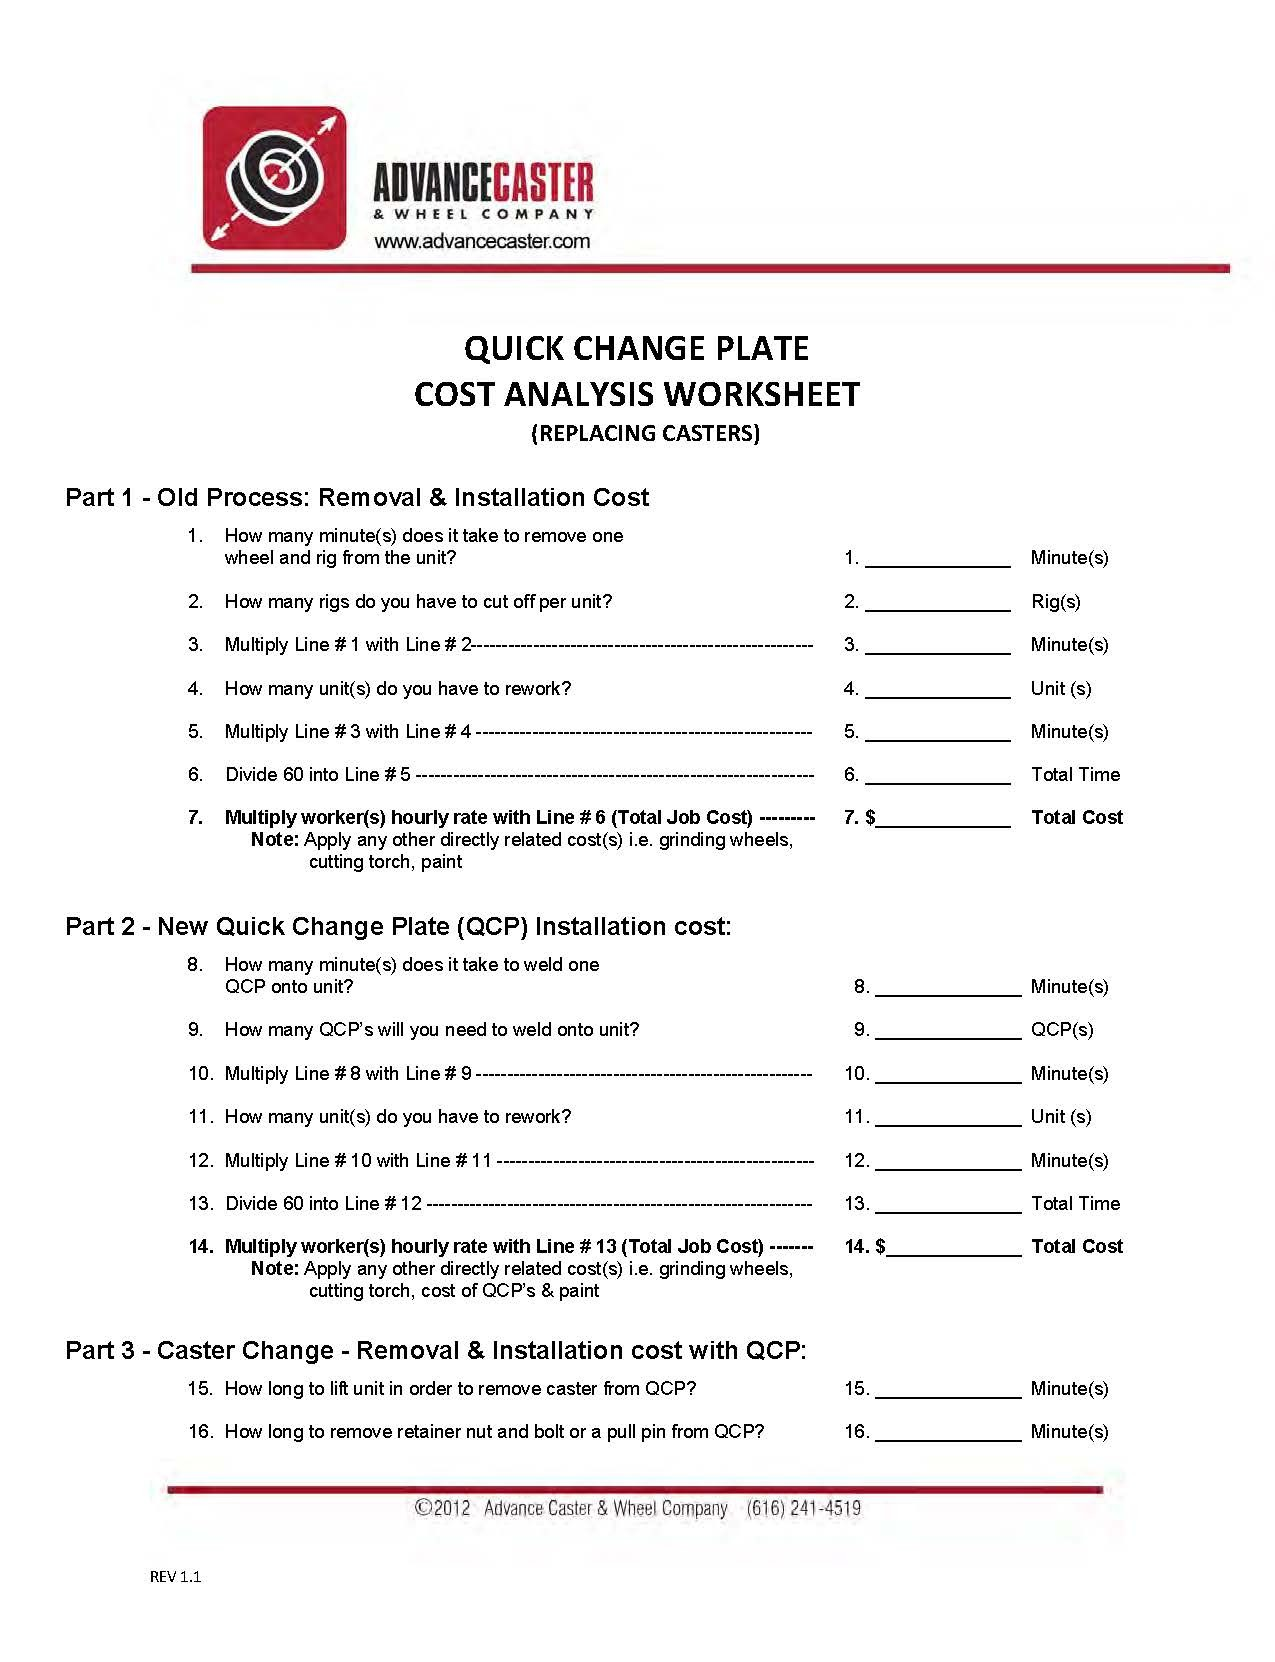 Cost Analysis Worksheet